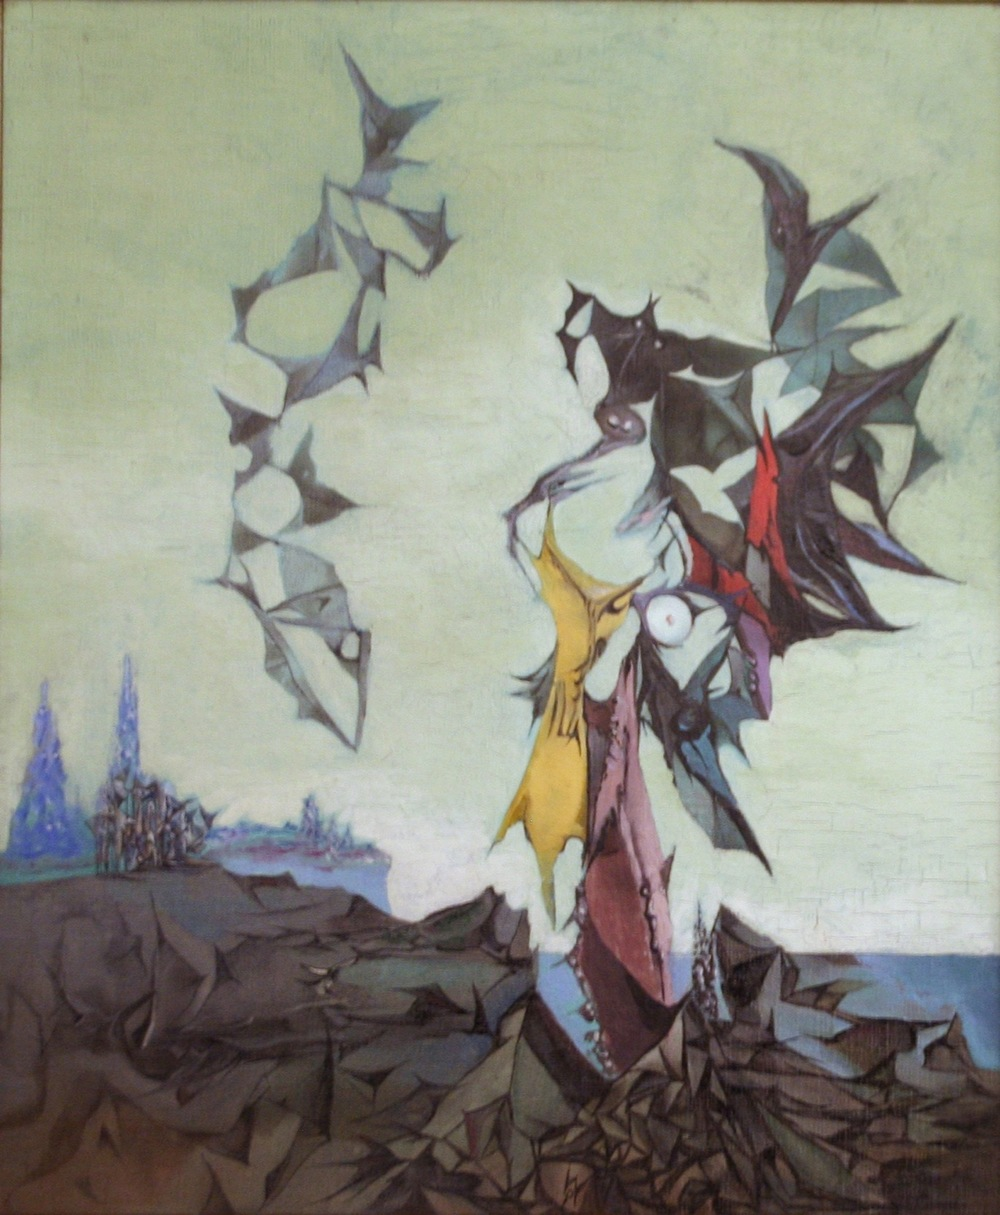 Wolfgang Paalen Voyage Totemique Oil on canvas, 18